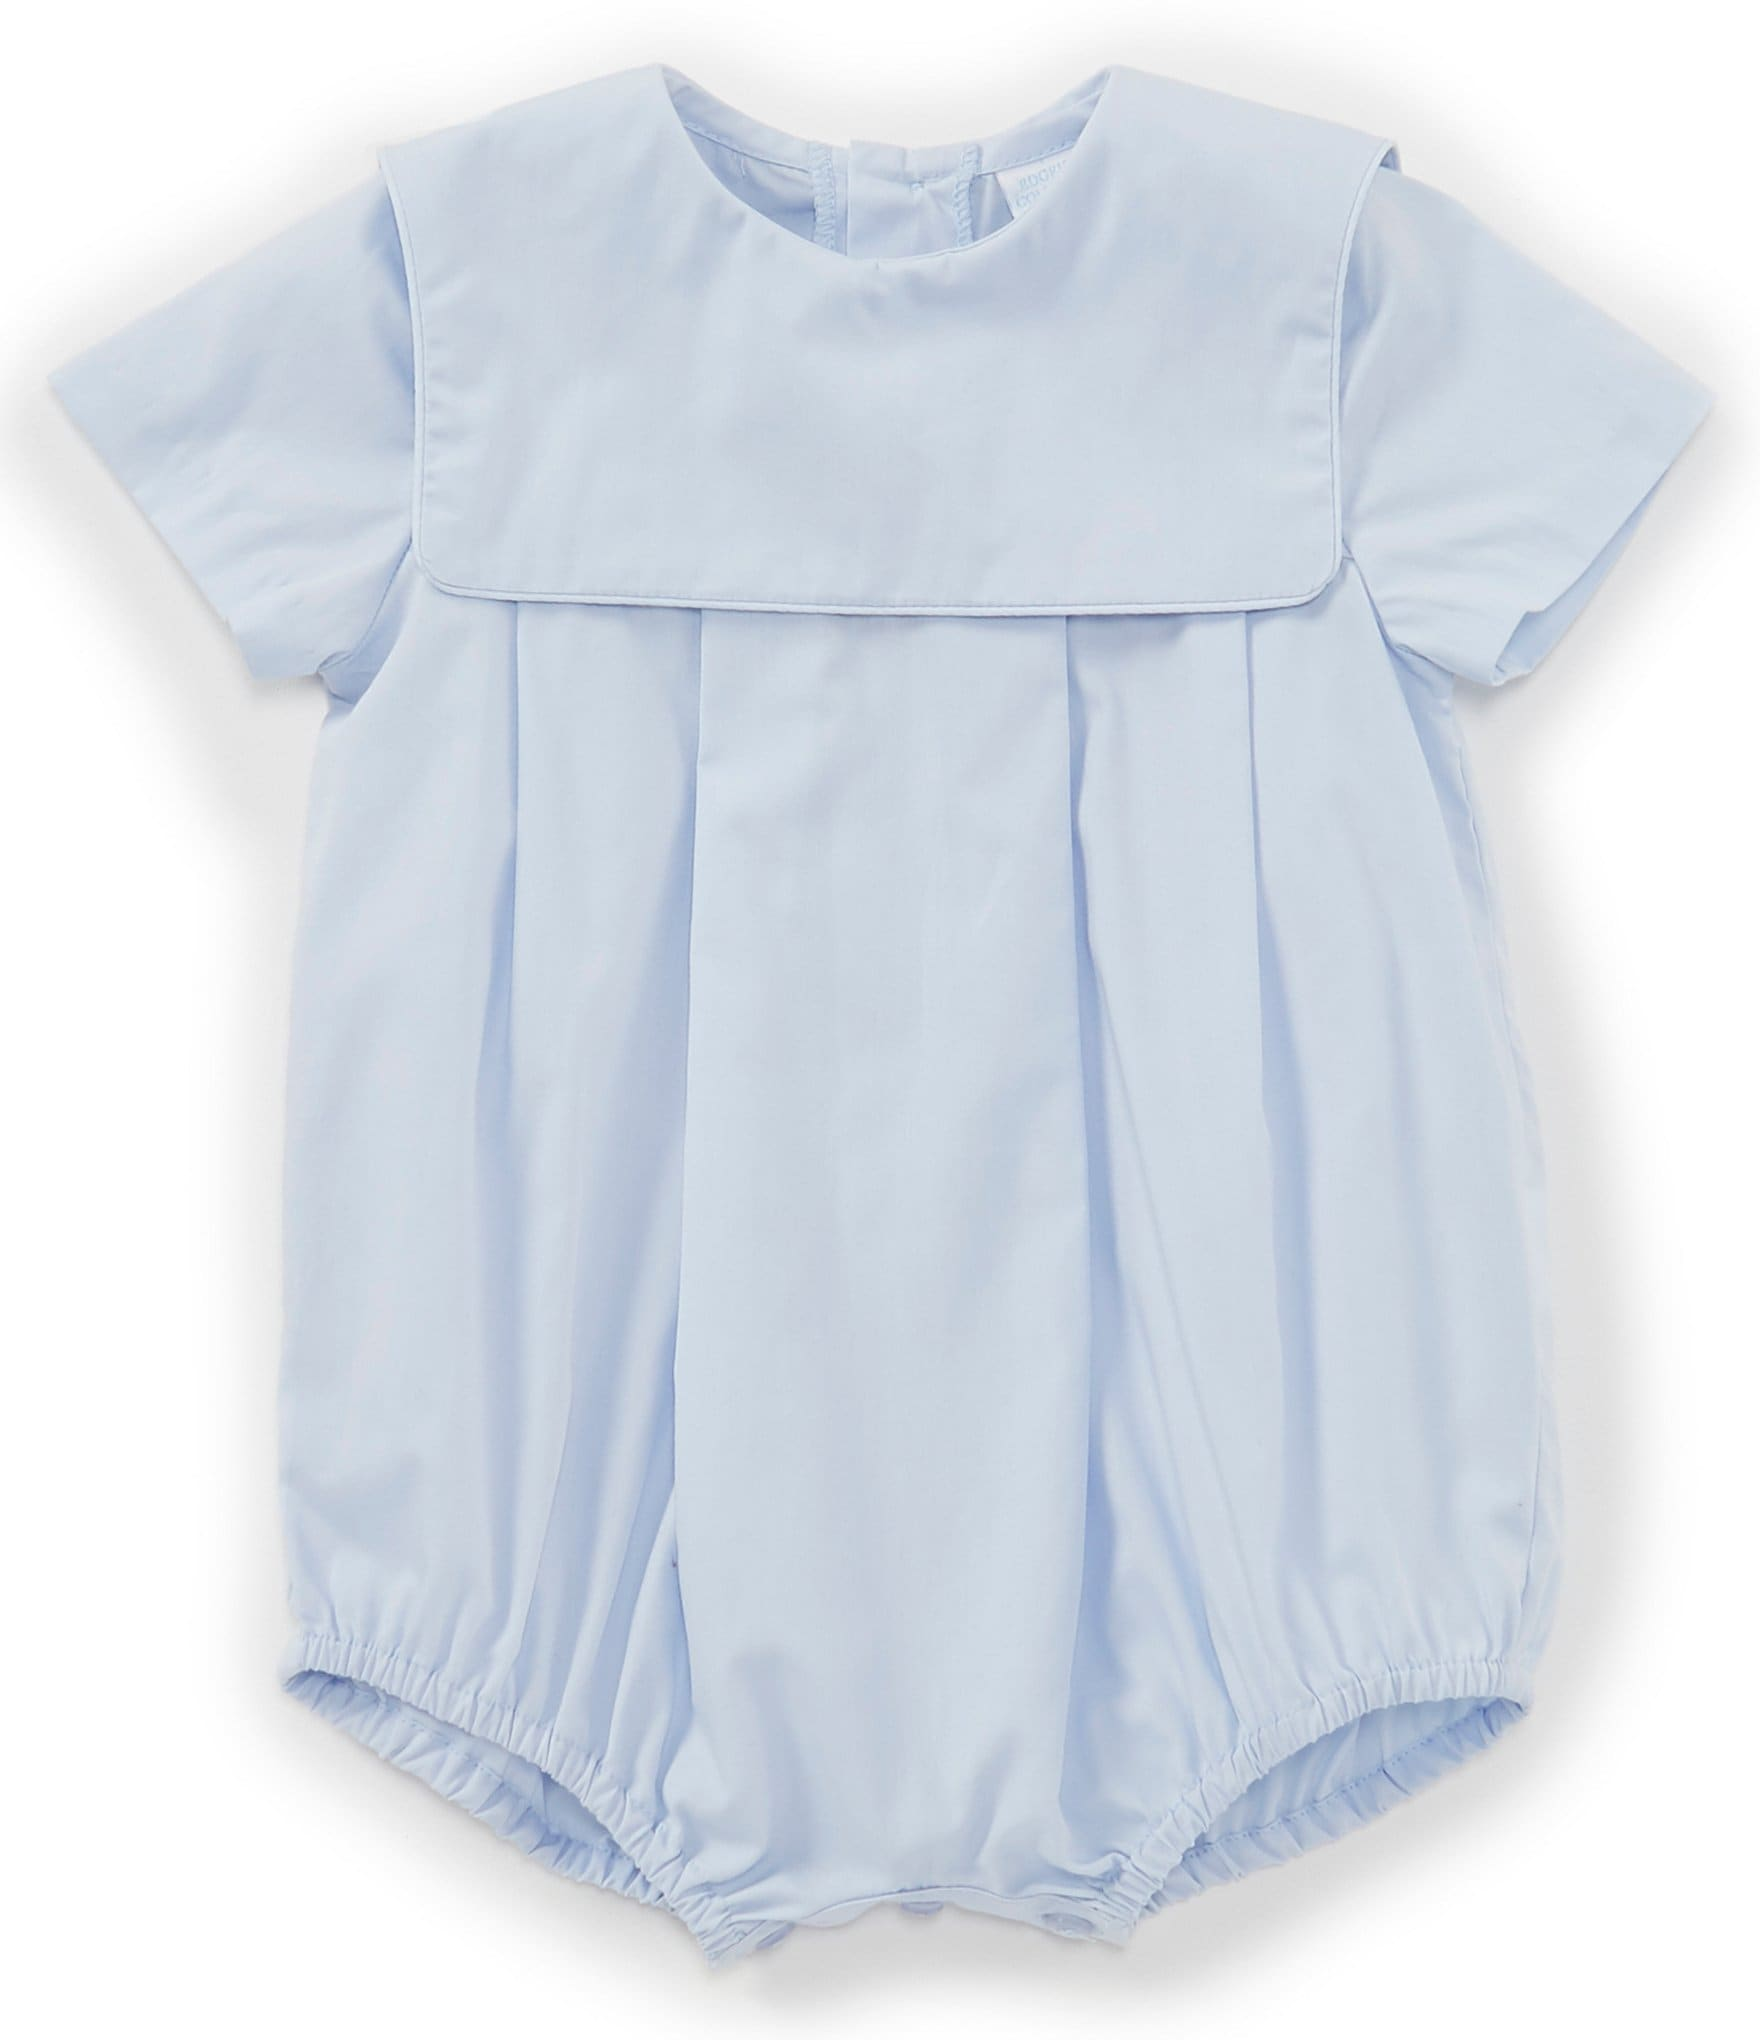 6c4426856 Baby Boys Clothing